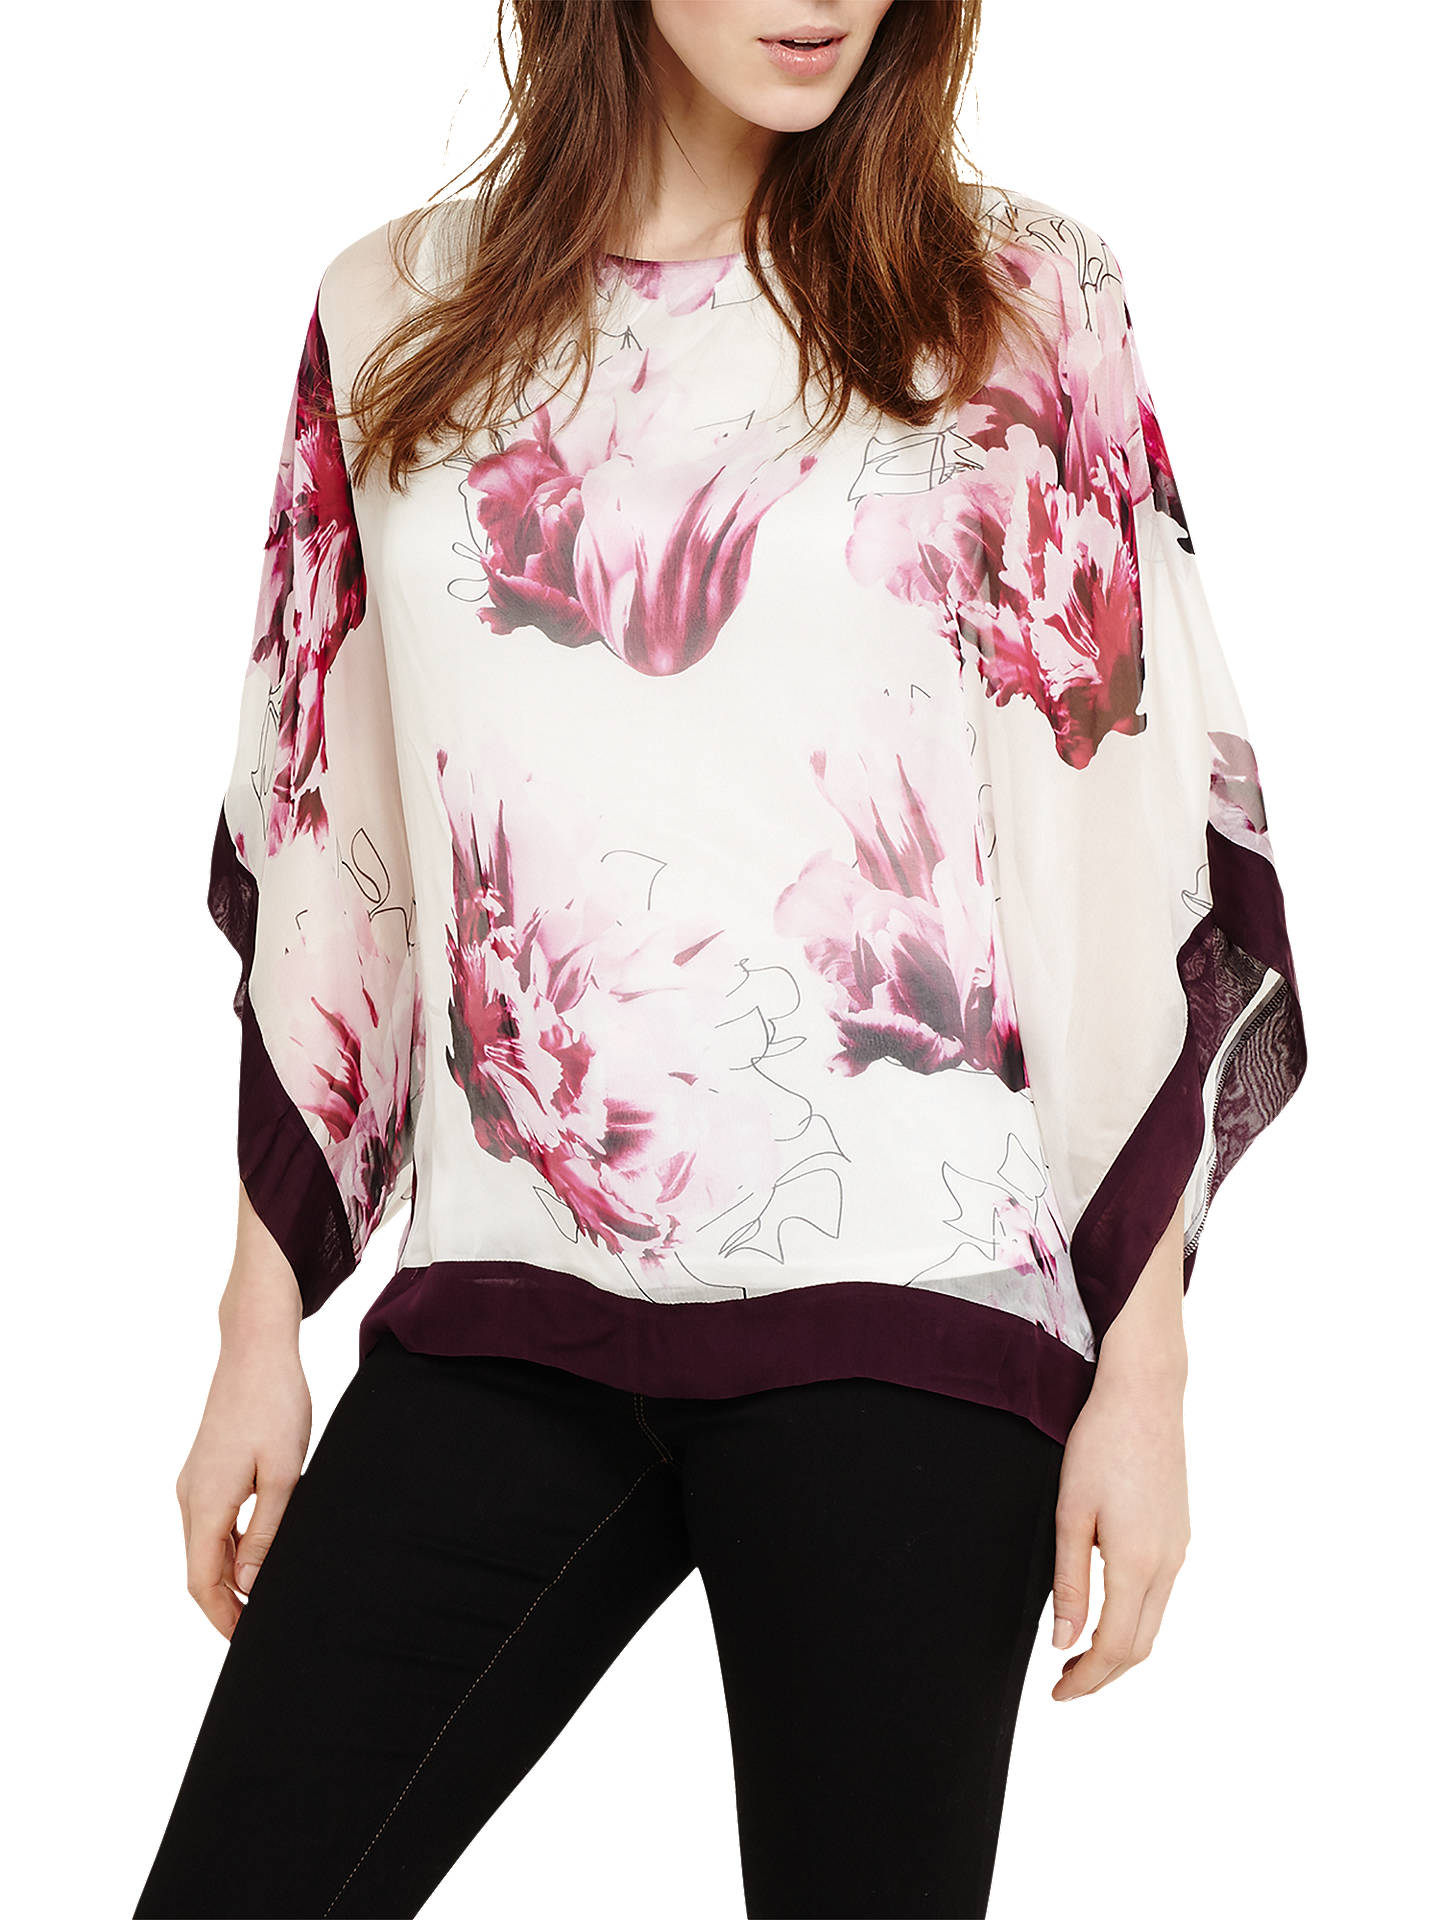 30bc544ac06e0b Buy Phase Eight Peony Floral Silk Blouse, Magenta, XS Online at  johnlewis.com ...